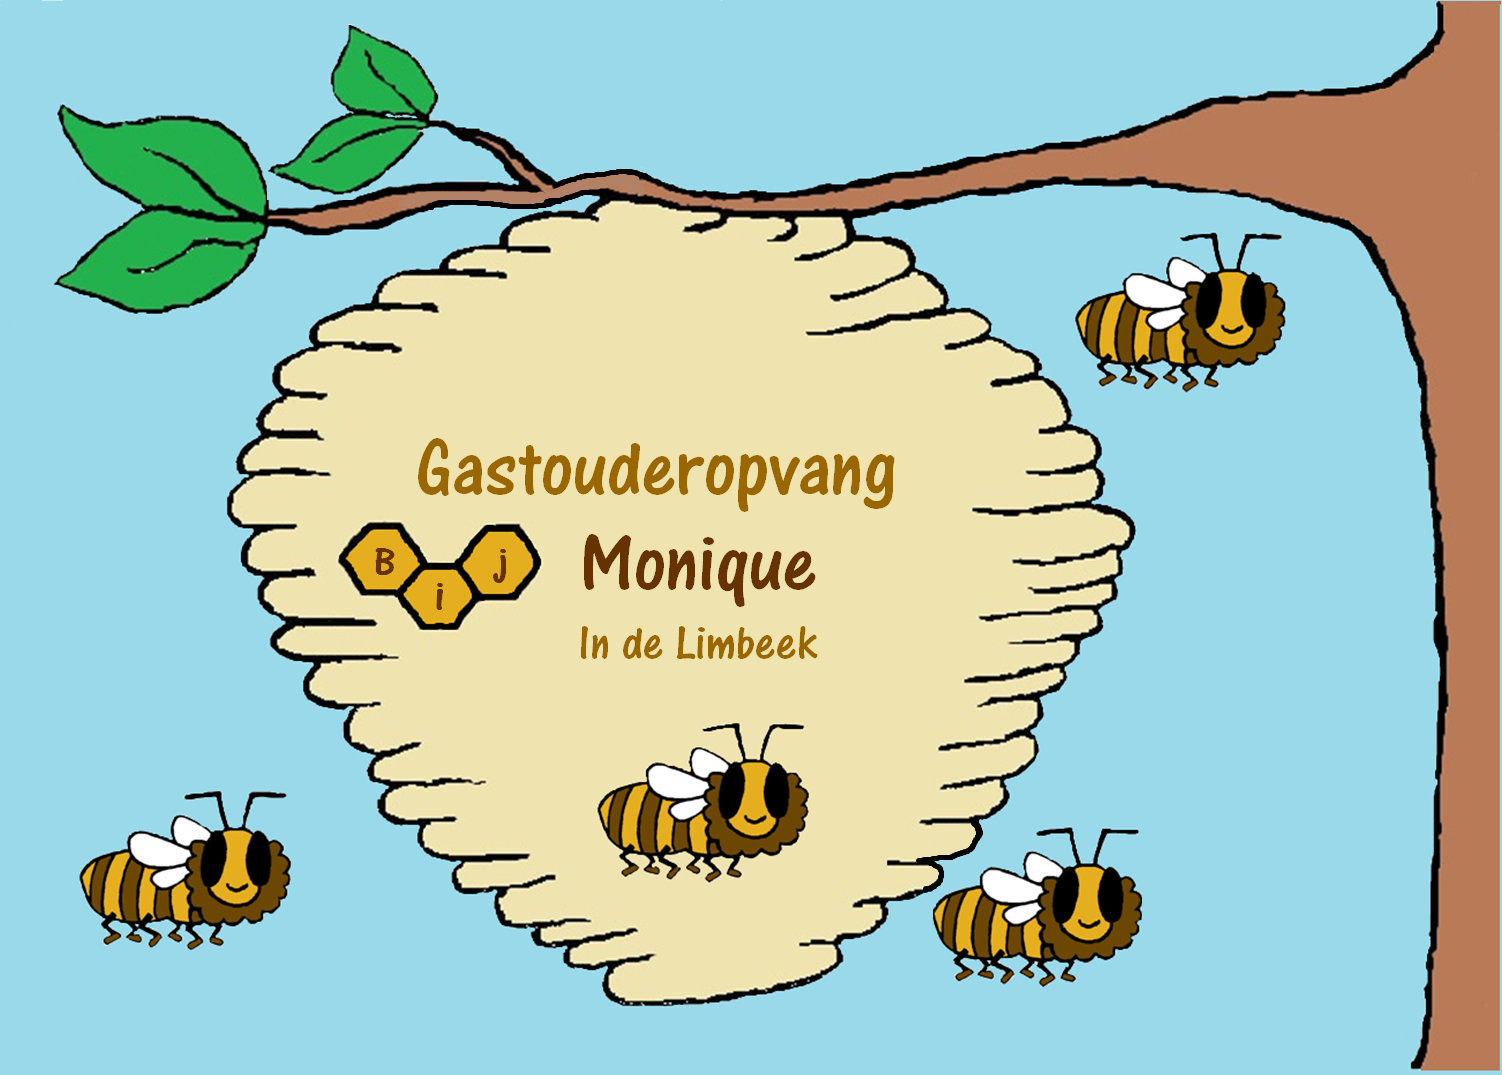 LOGO BIJ MONIQUE IN DE LIMBEEK 2017 .1